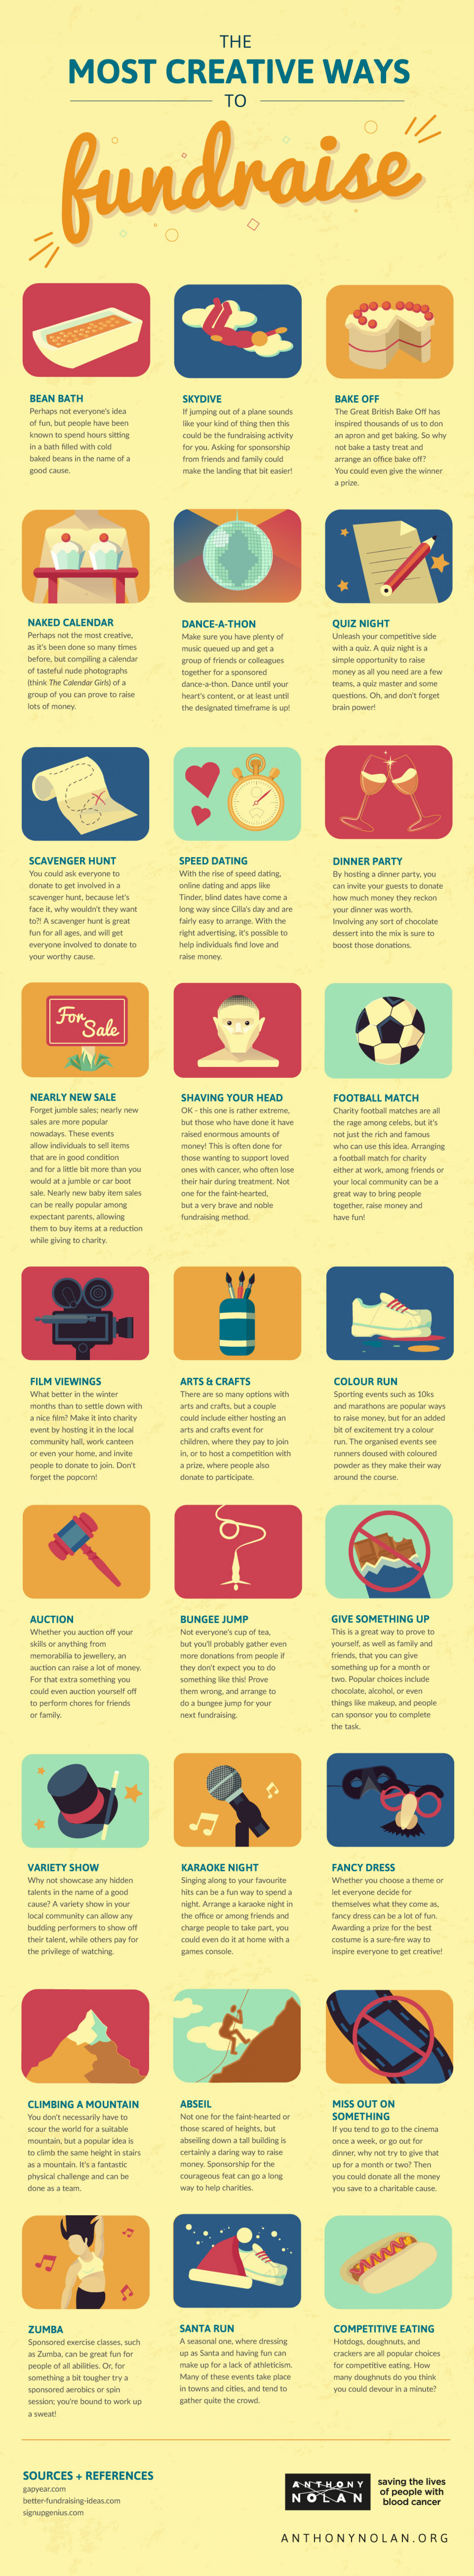 The most creative ways to fundraise Infographic